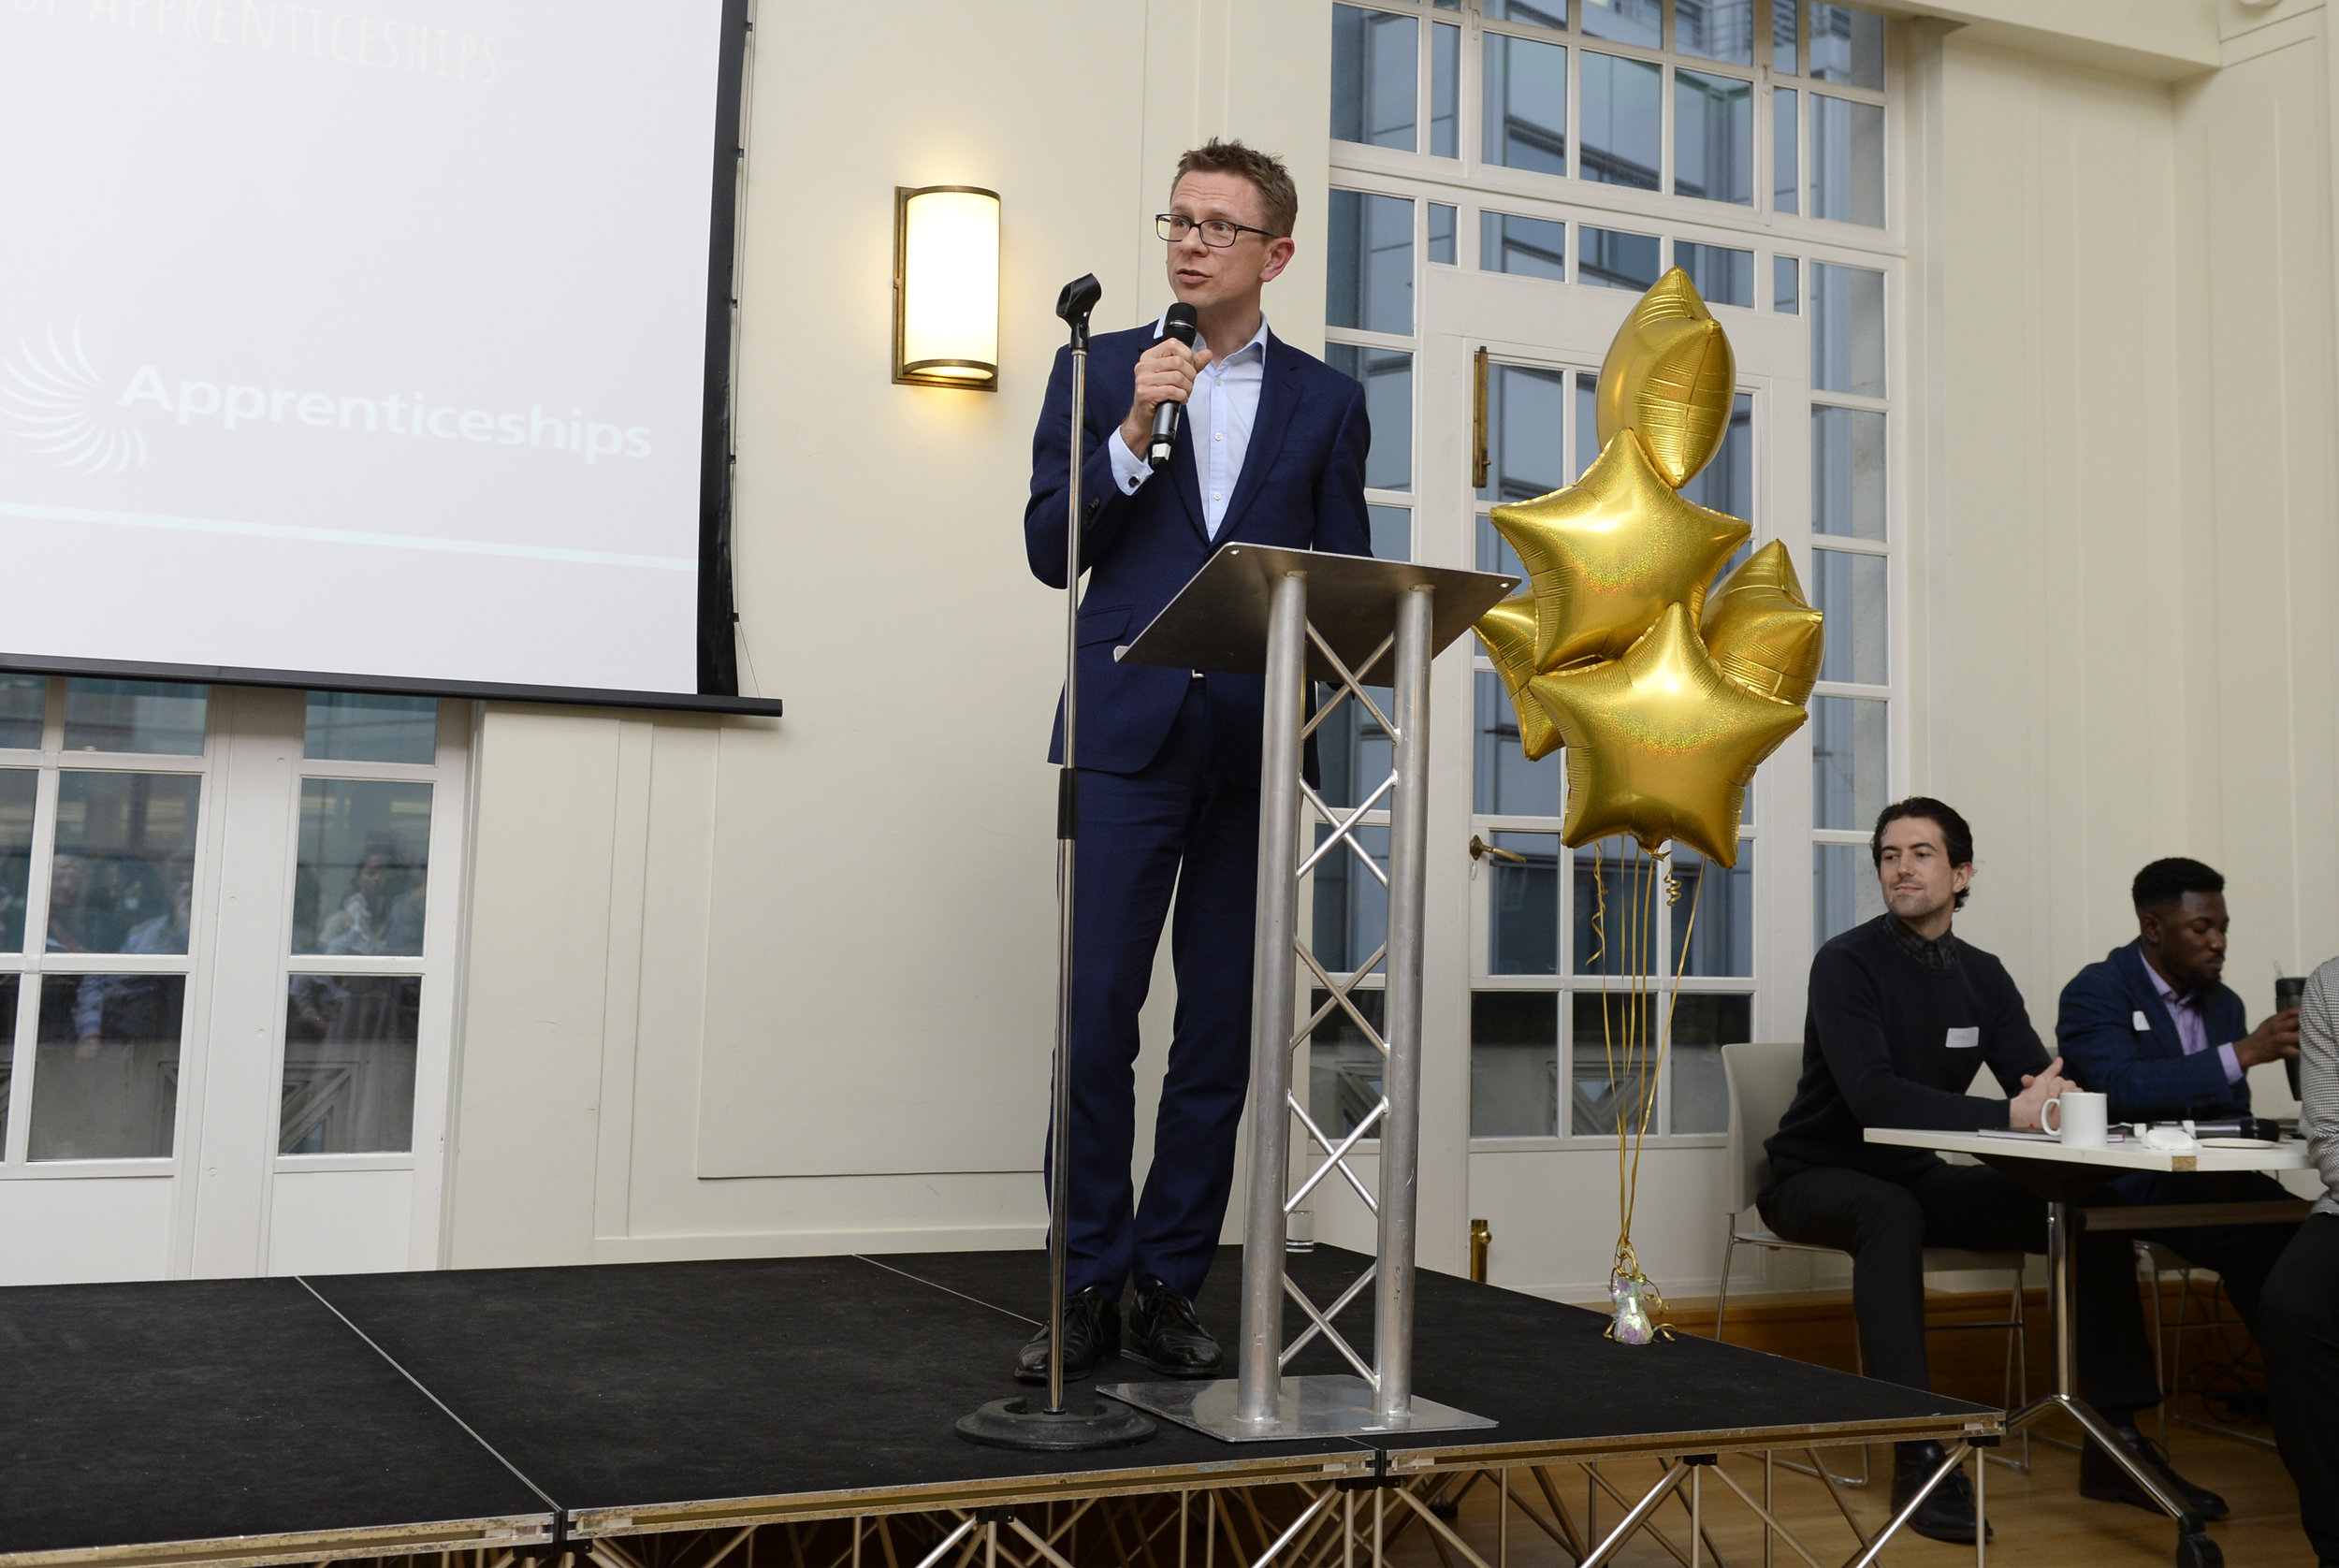 Anthony impey MBE, Founder of optimity presenting at the Hackney apprenticeship network launch